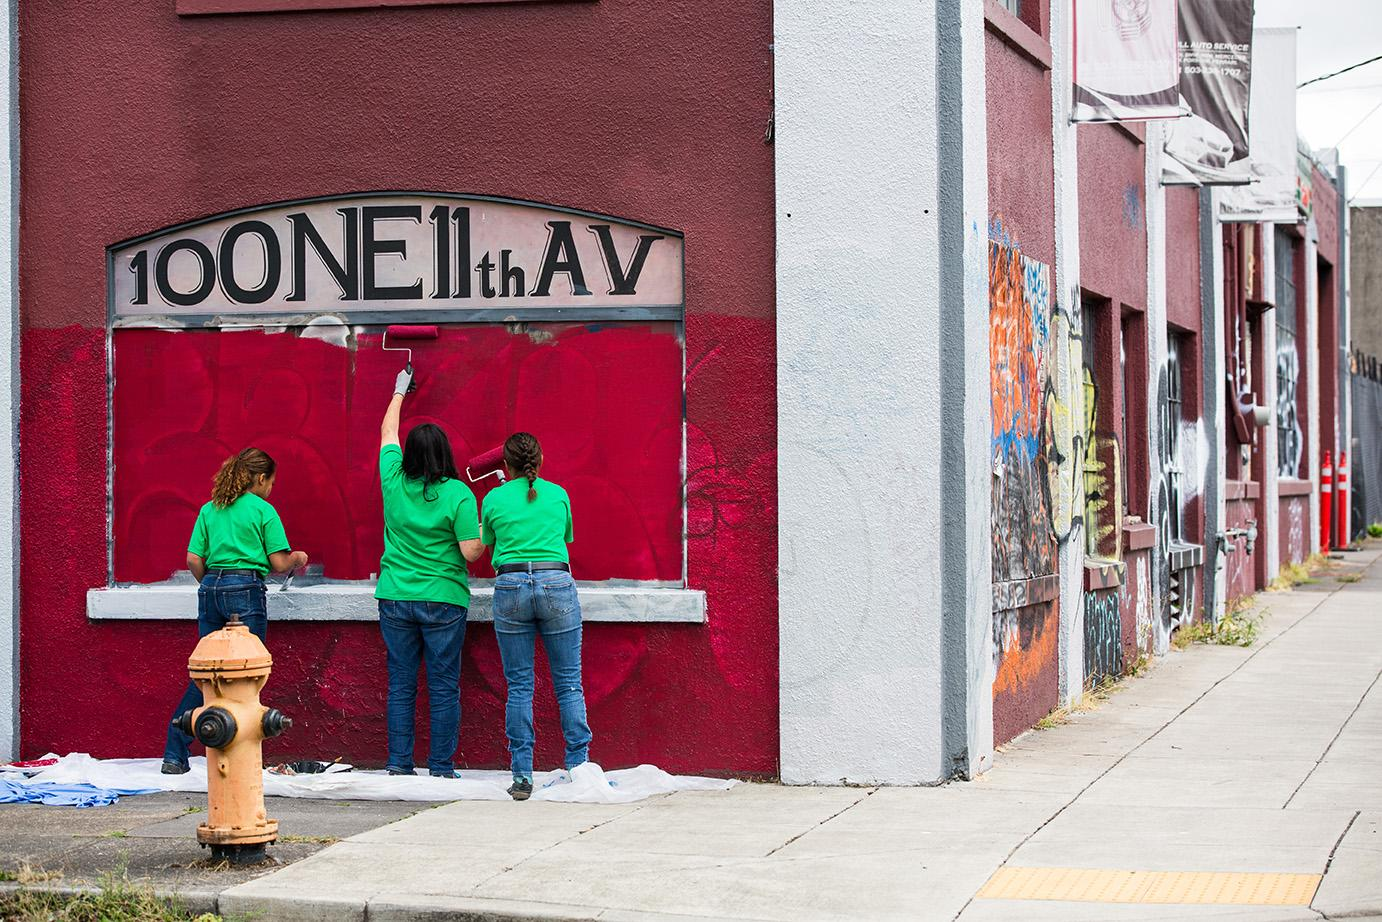 teens paint over graffiti in downtown area